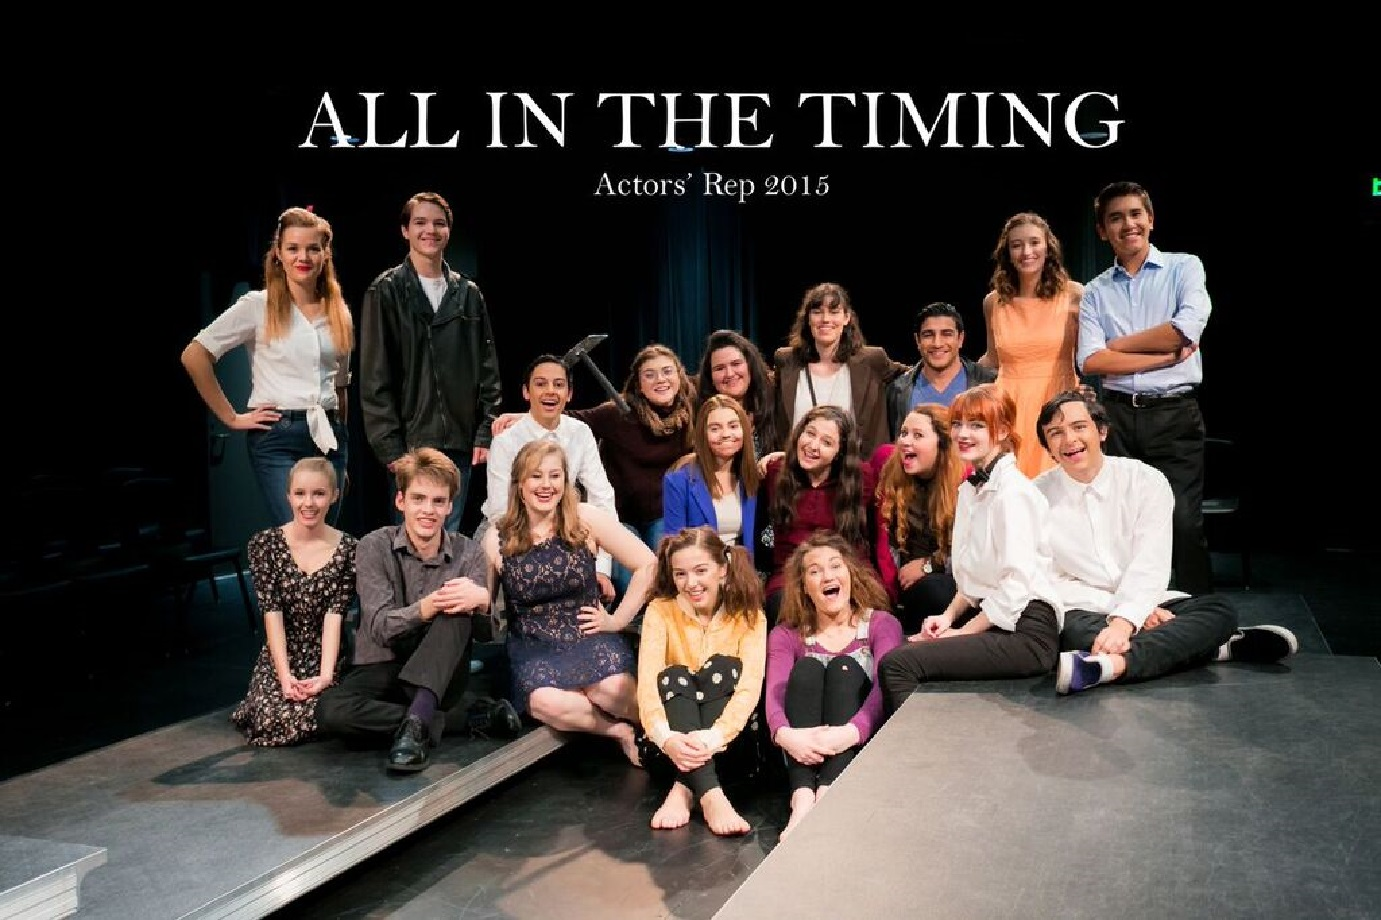 All in the Timing Cast Photo